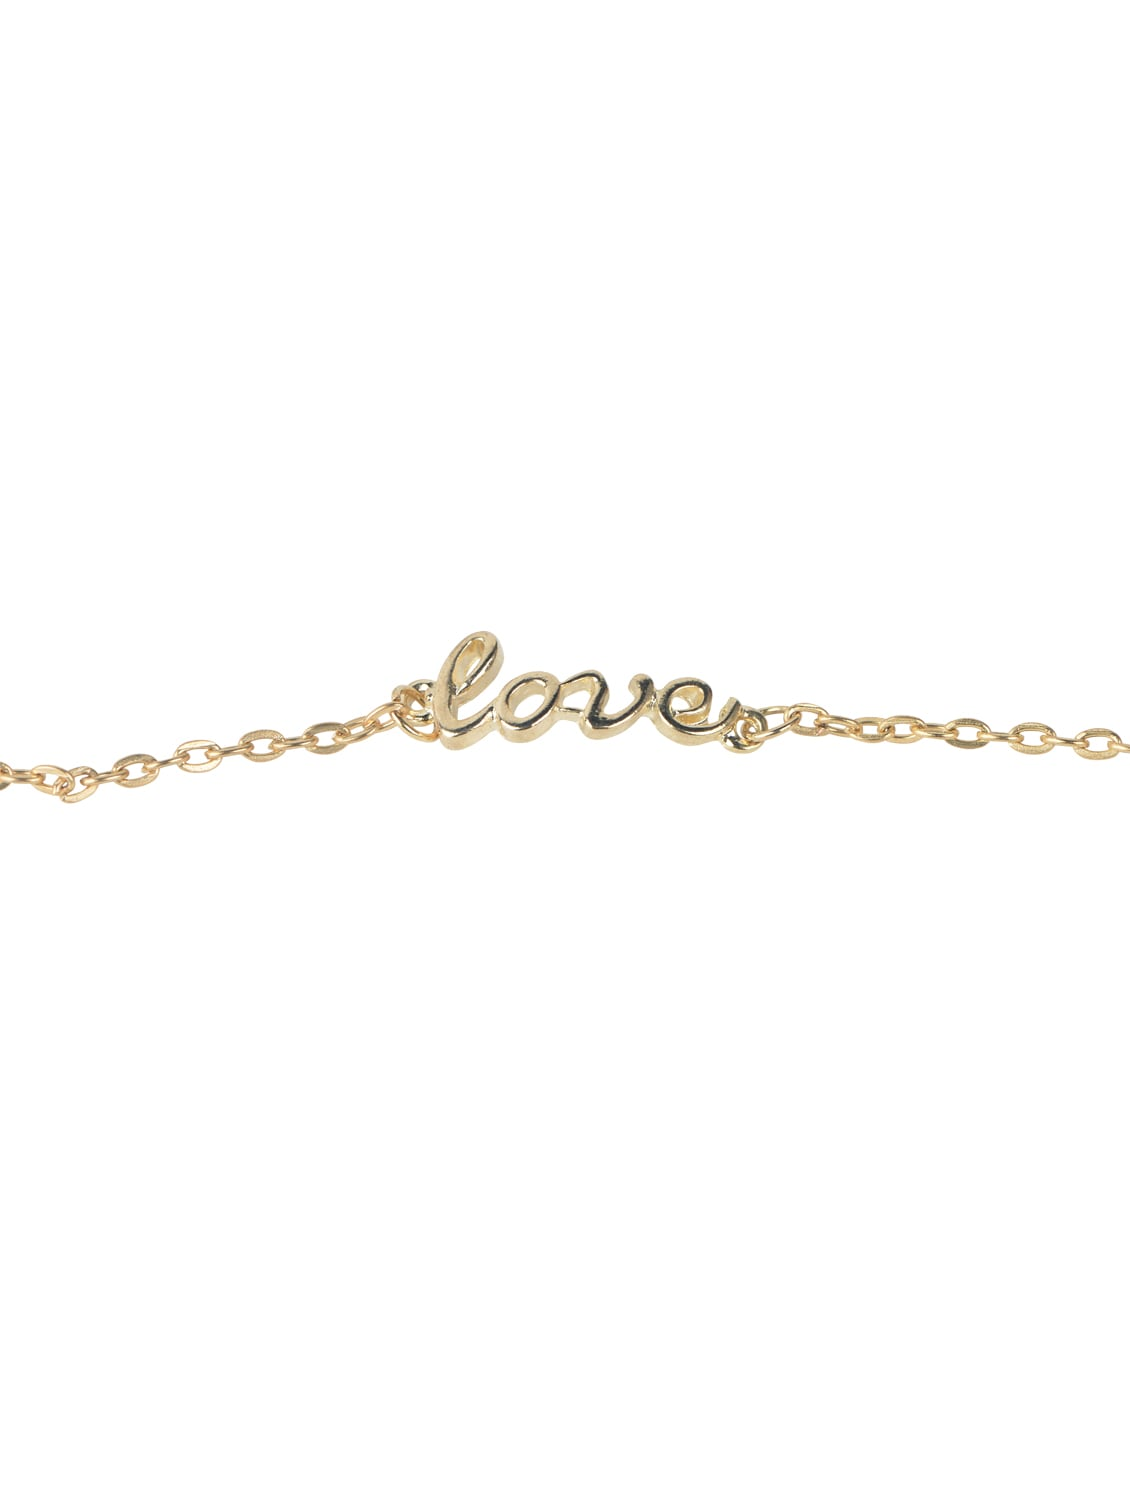 Fashion style Anklets stylish online india for girls